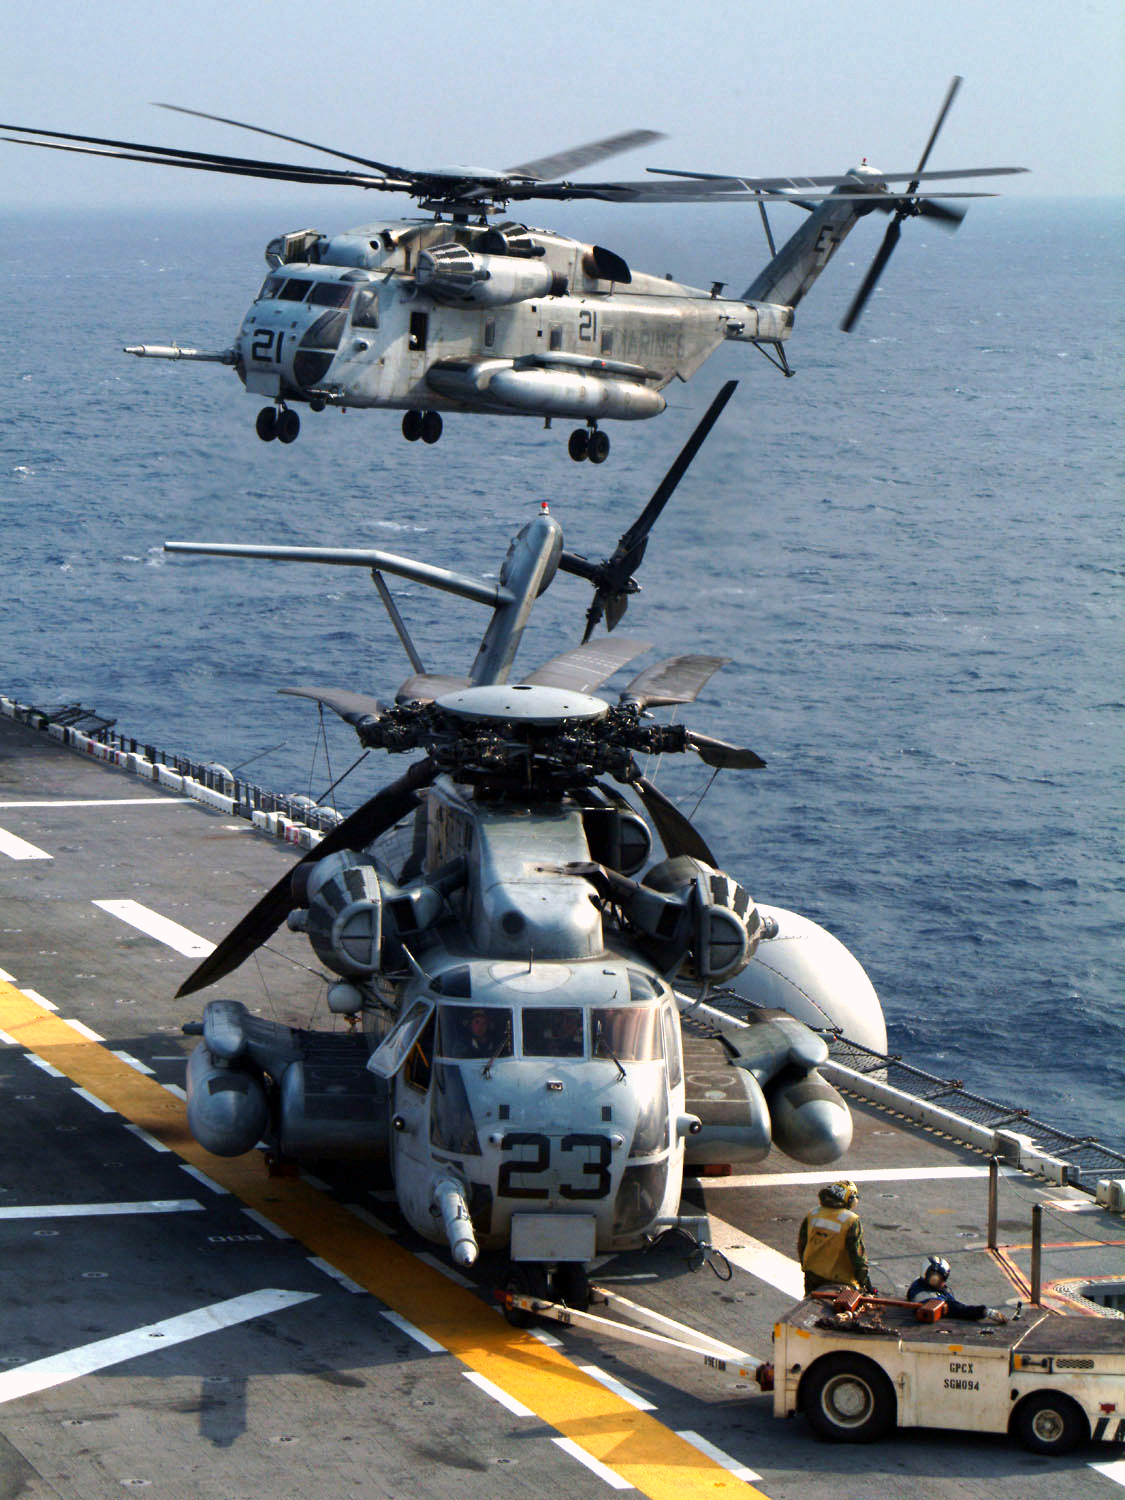 File:US Navy 030120-N-2970T-001 CH-53 performs deck ...